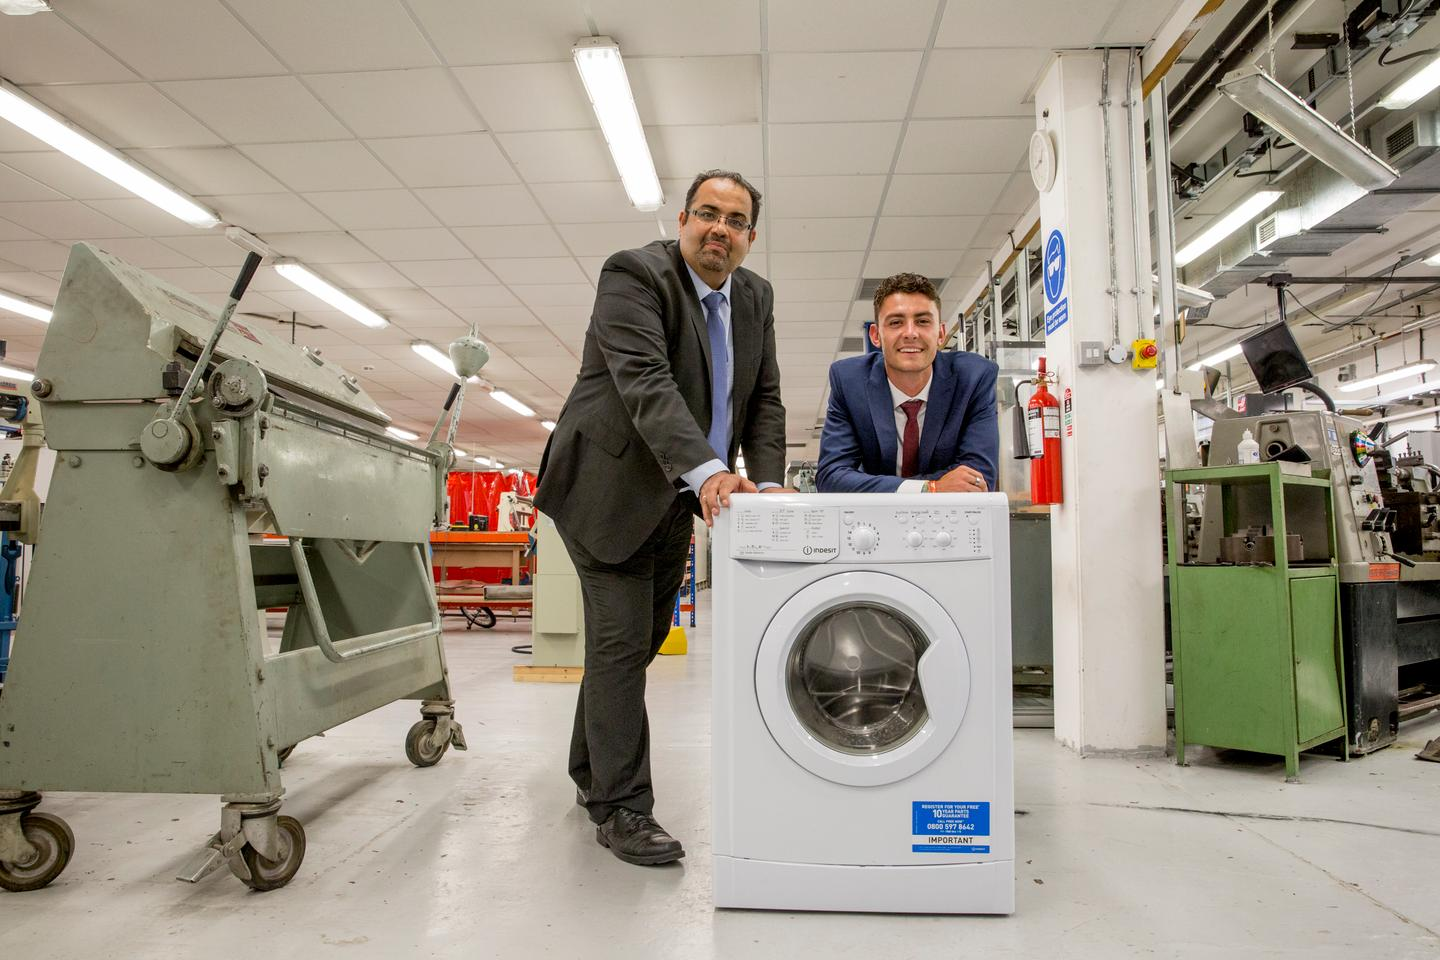 Professor Amin Al-Habaibeh and undergraduate Dylan Knight from Nottingham Trent University are currently refining the device before pitching the idea to appliance manufacturers